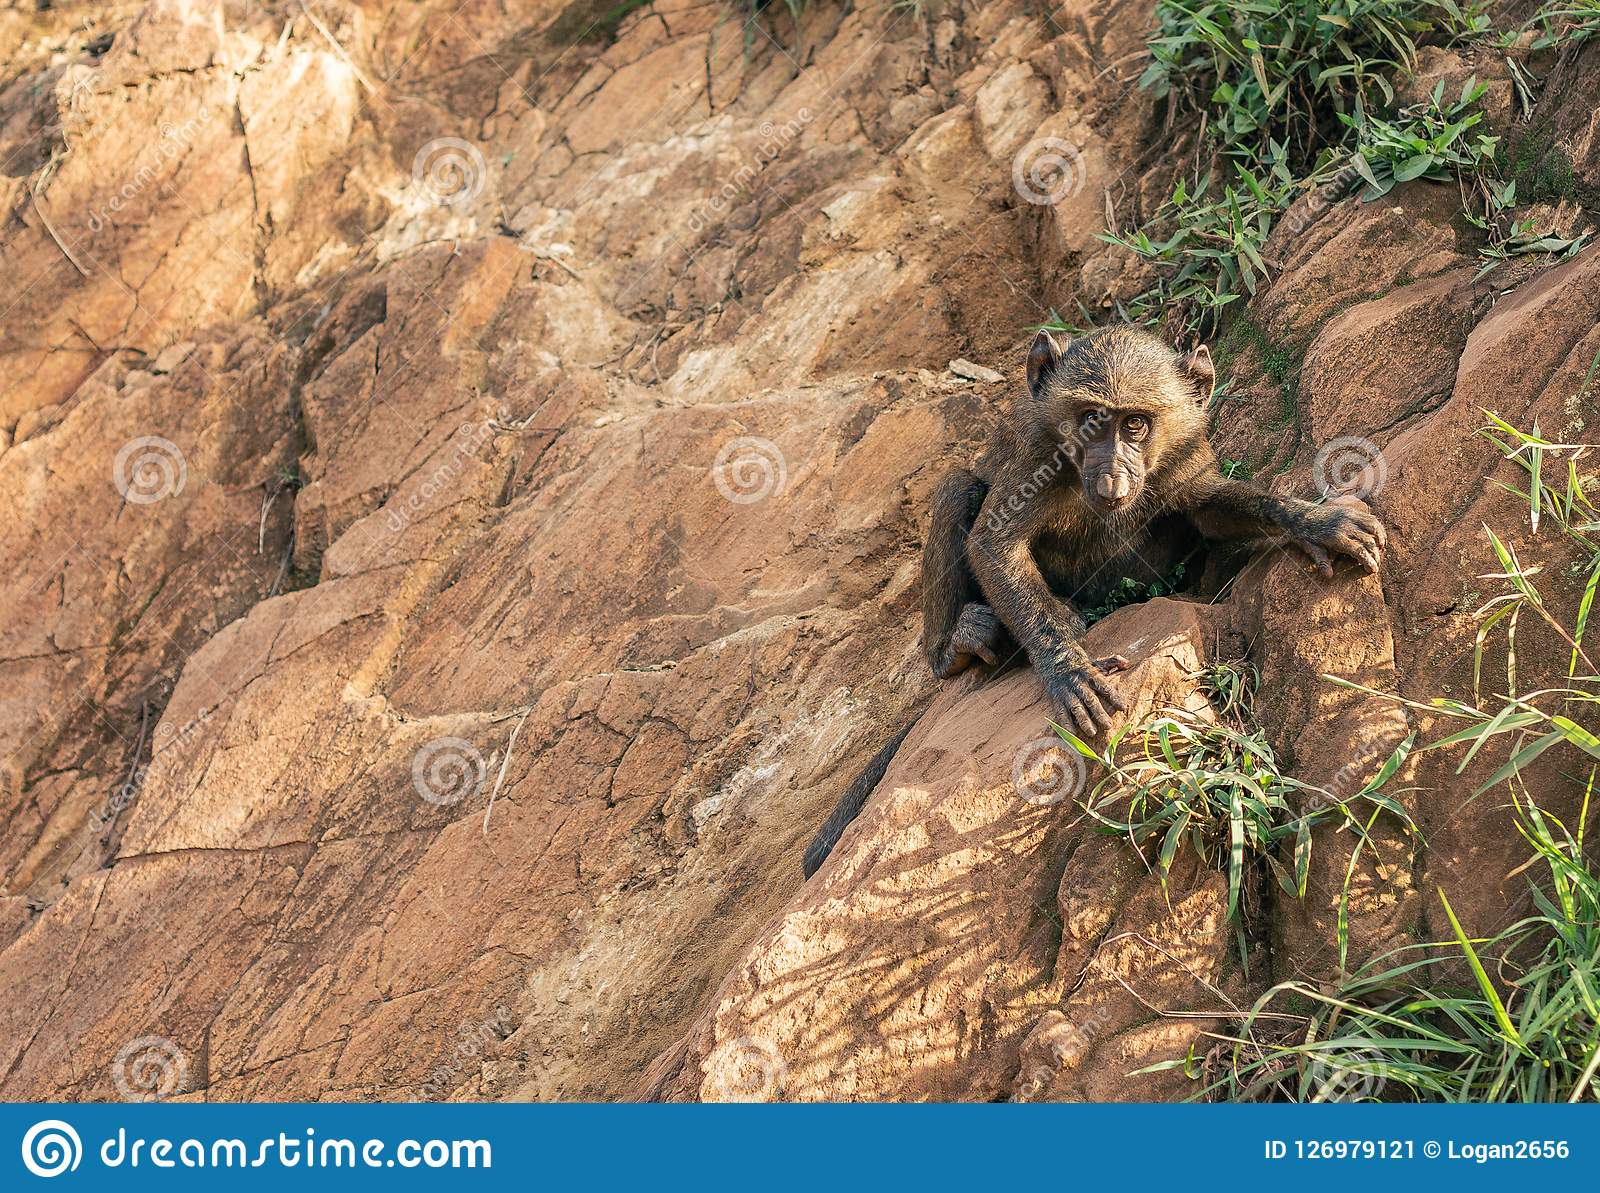 Young baboon monkey animal climbing and clinging onto rocks by the Nile River in Ethiopia Africa.